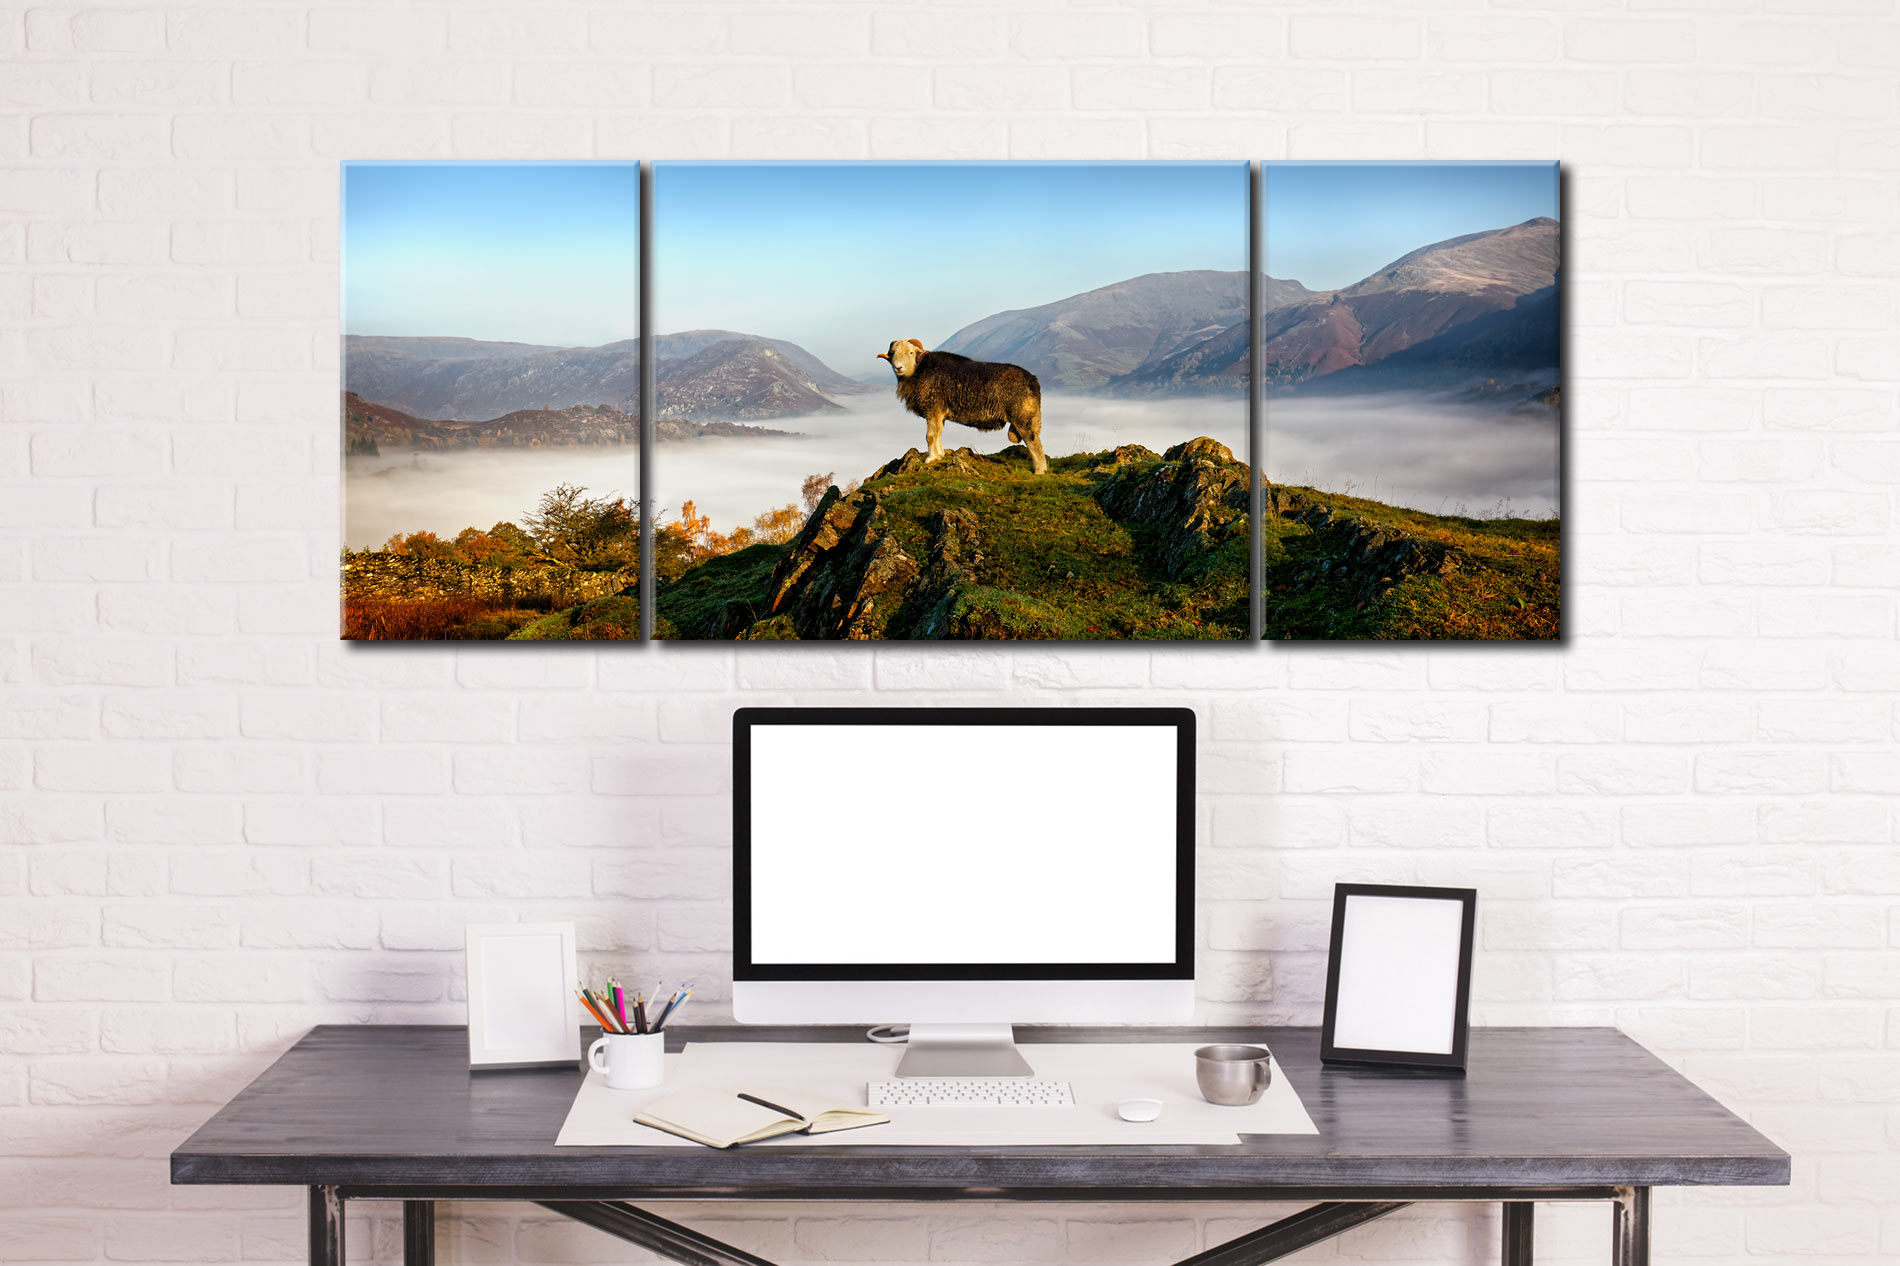 King of Cumbria - 3 Panel Wide Centre Canvas on Wall